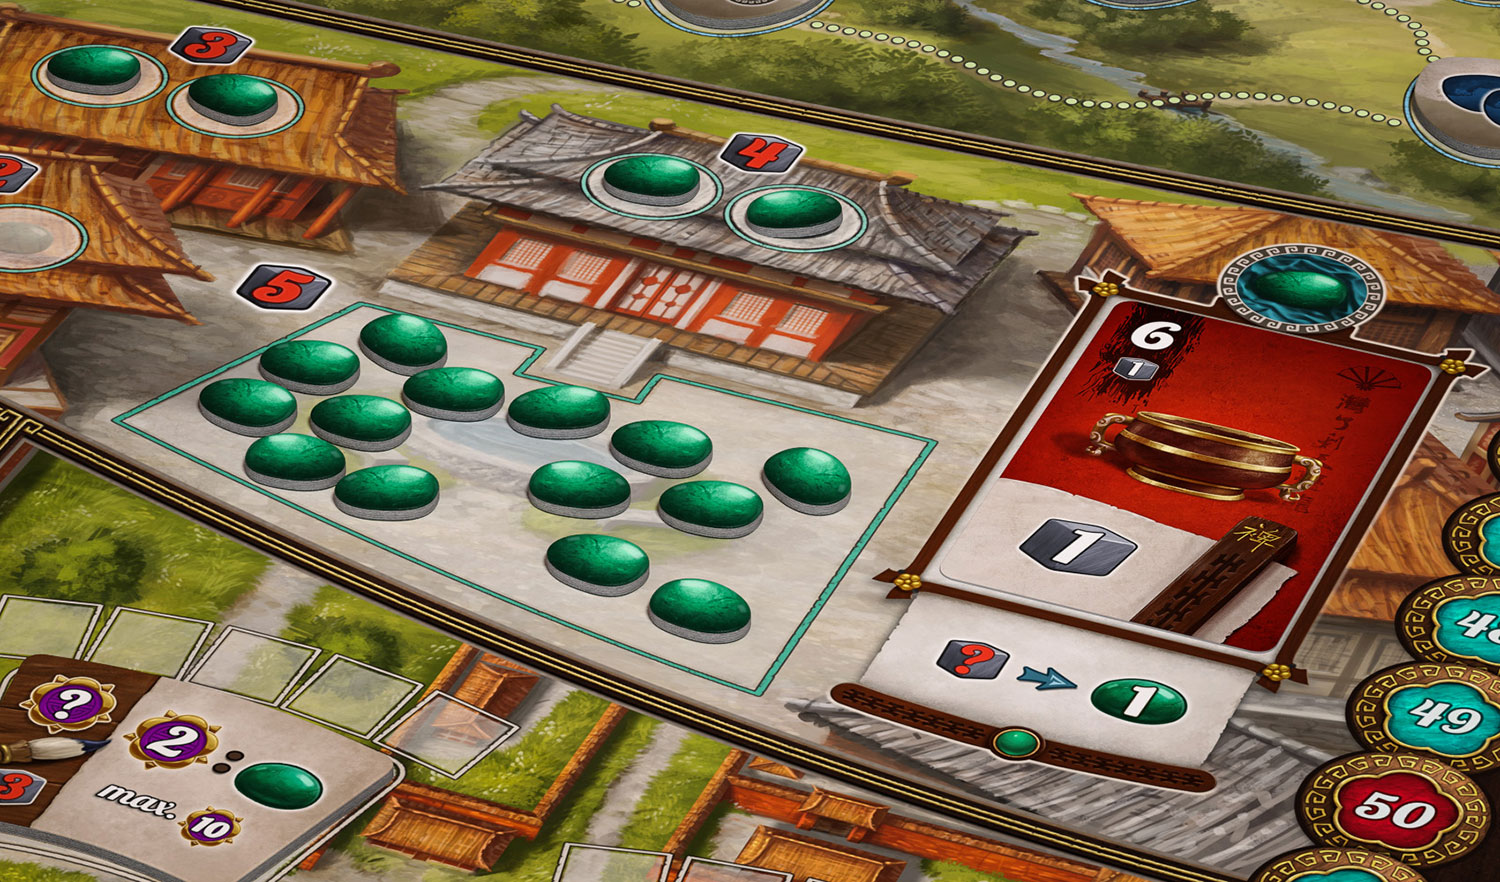 The Forbidden City startet am 1. Mai 2018 auf Kickstarter